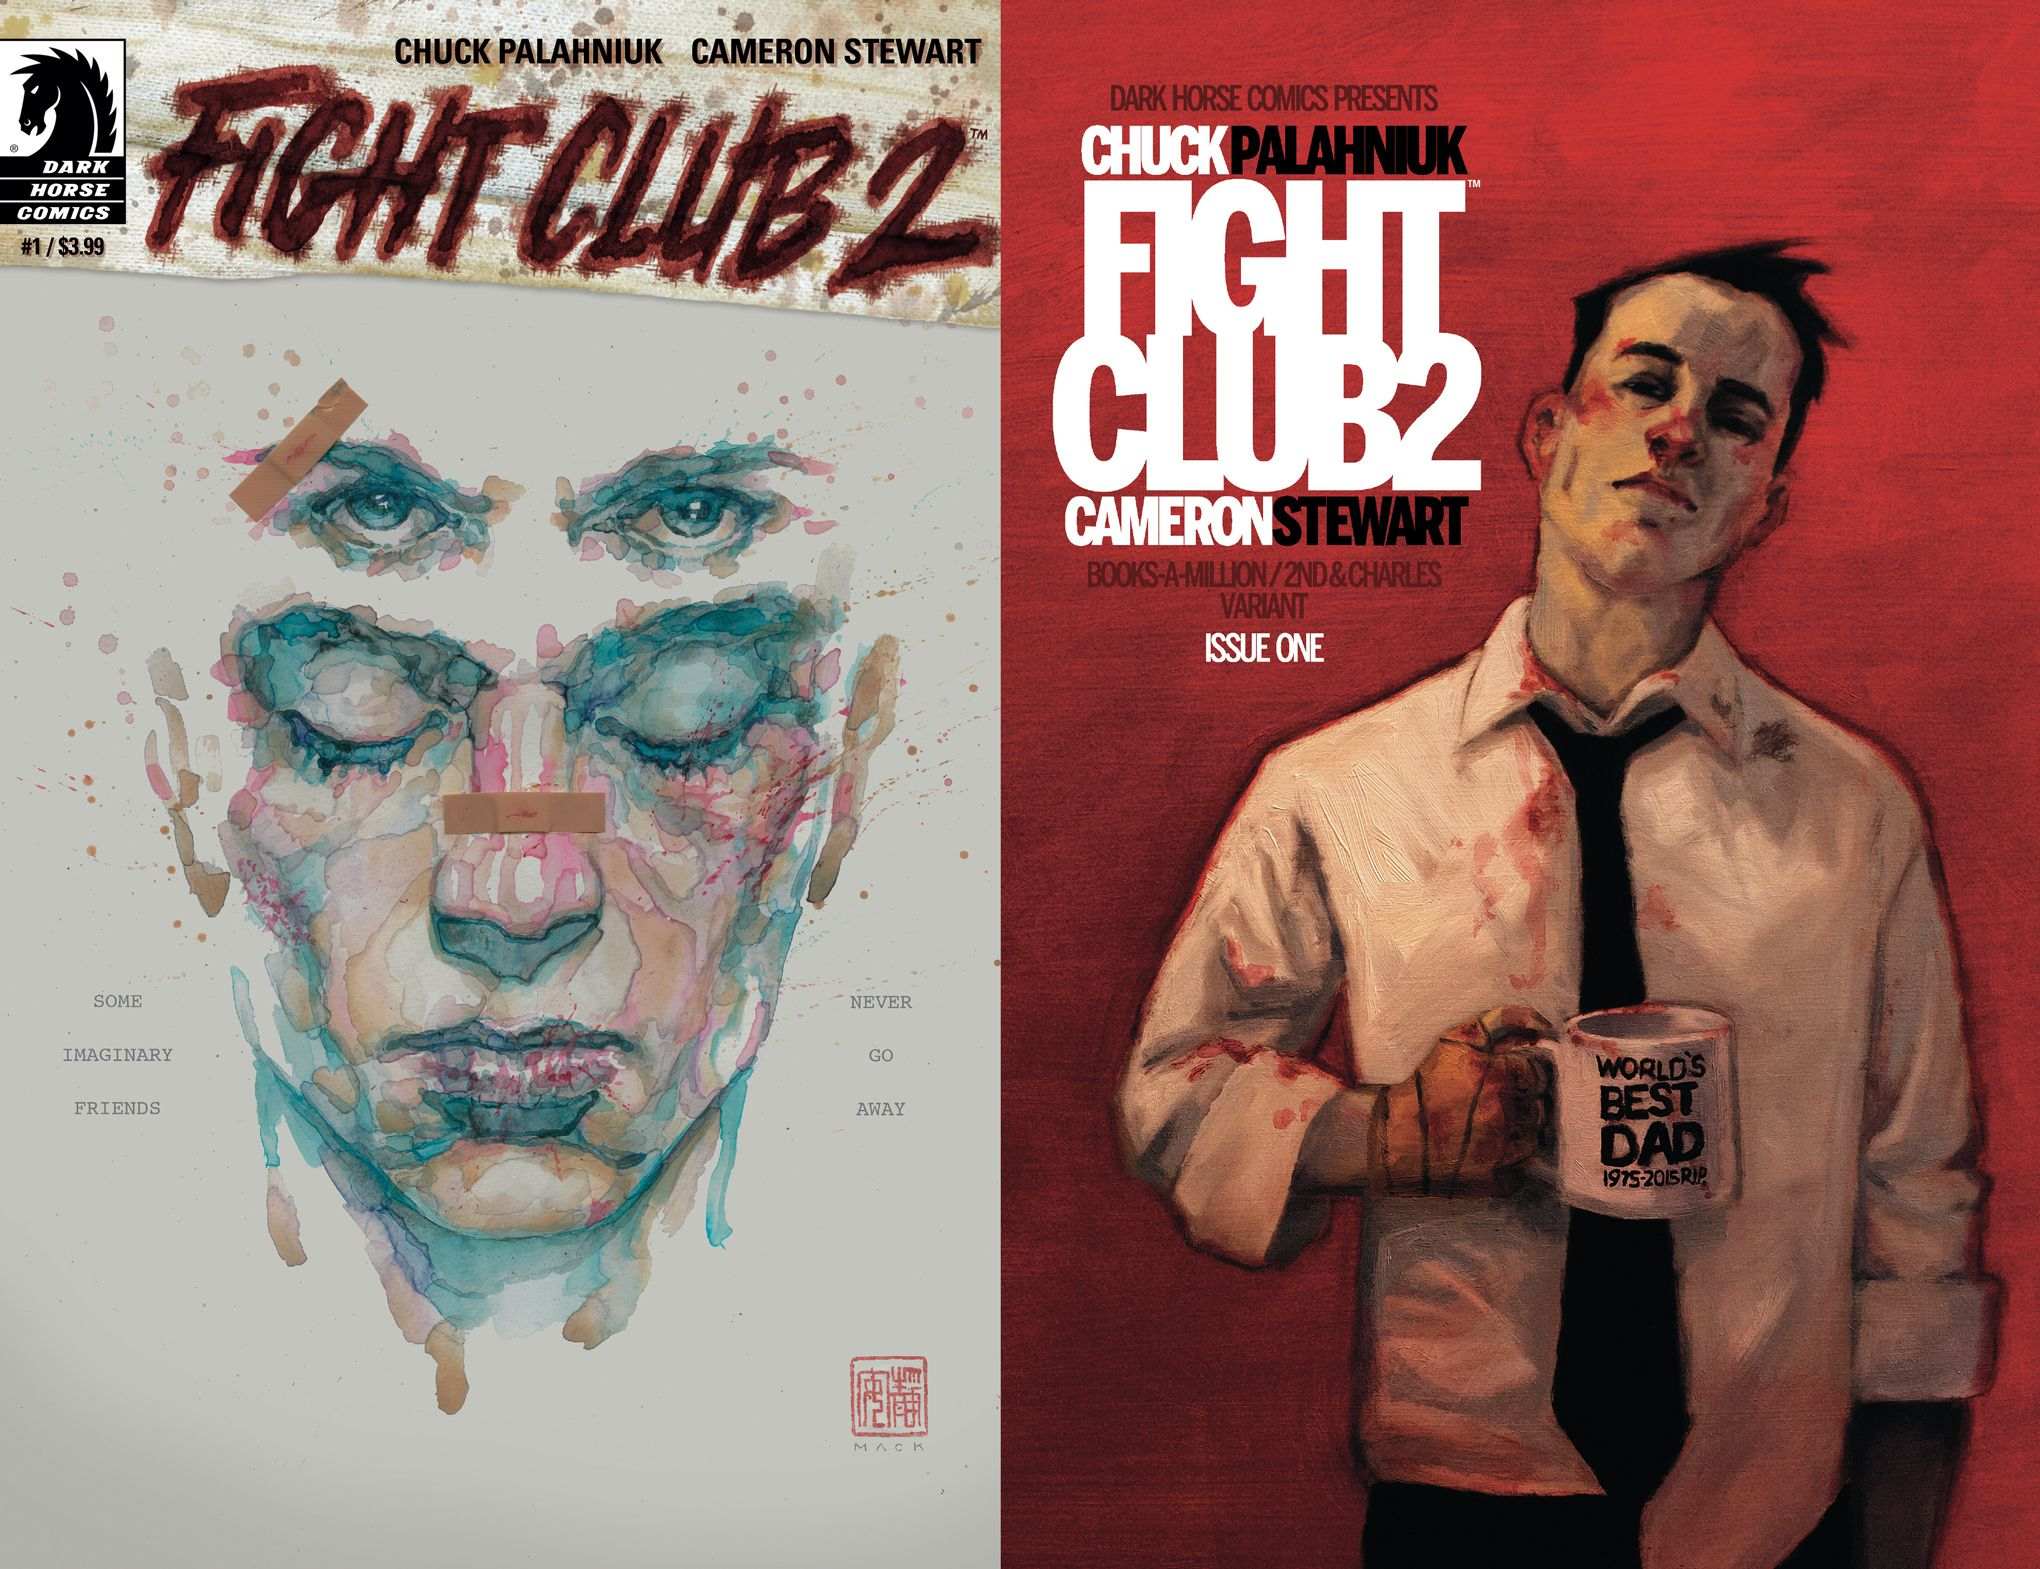 an analysis of fight club a novel by chuck palahniuk Deconstruction analysis of fight club  chuck palahniuk in  the second rule of fight club is that you don't talk about fight club (palahniuk, 1996) the novel.